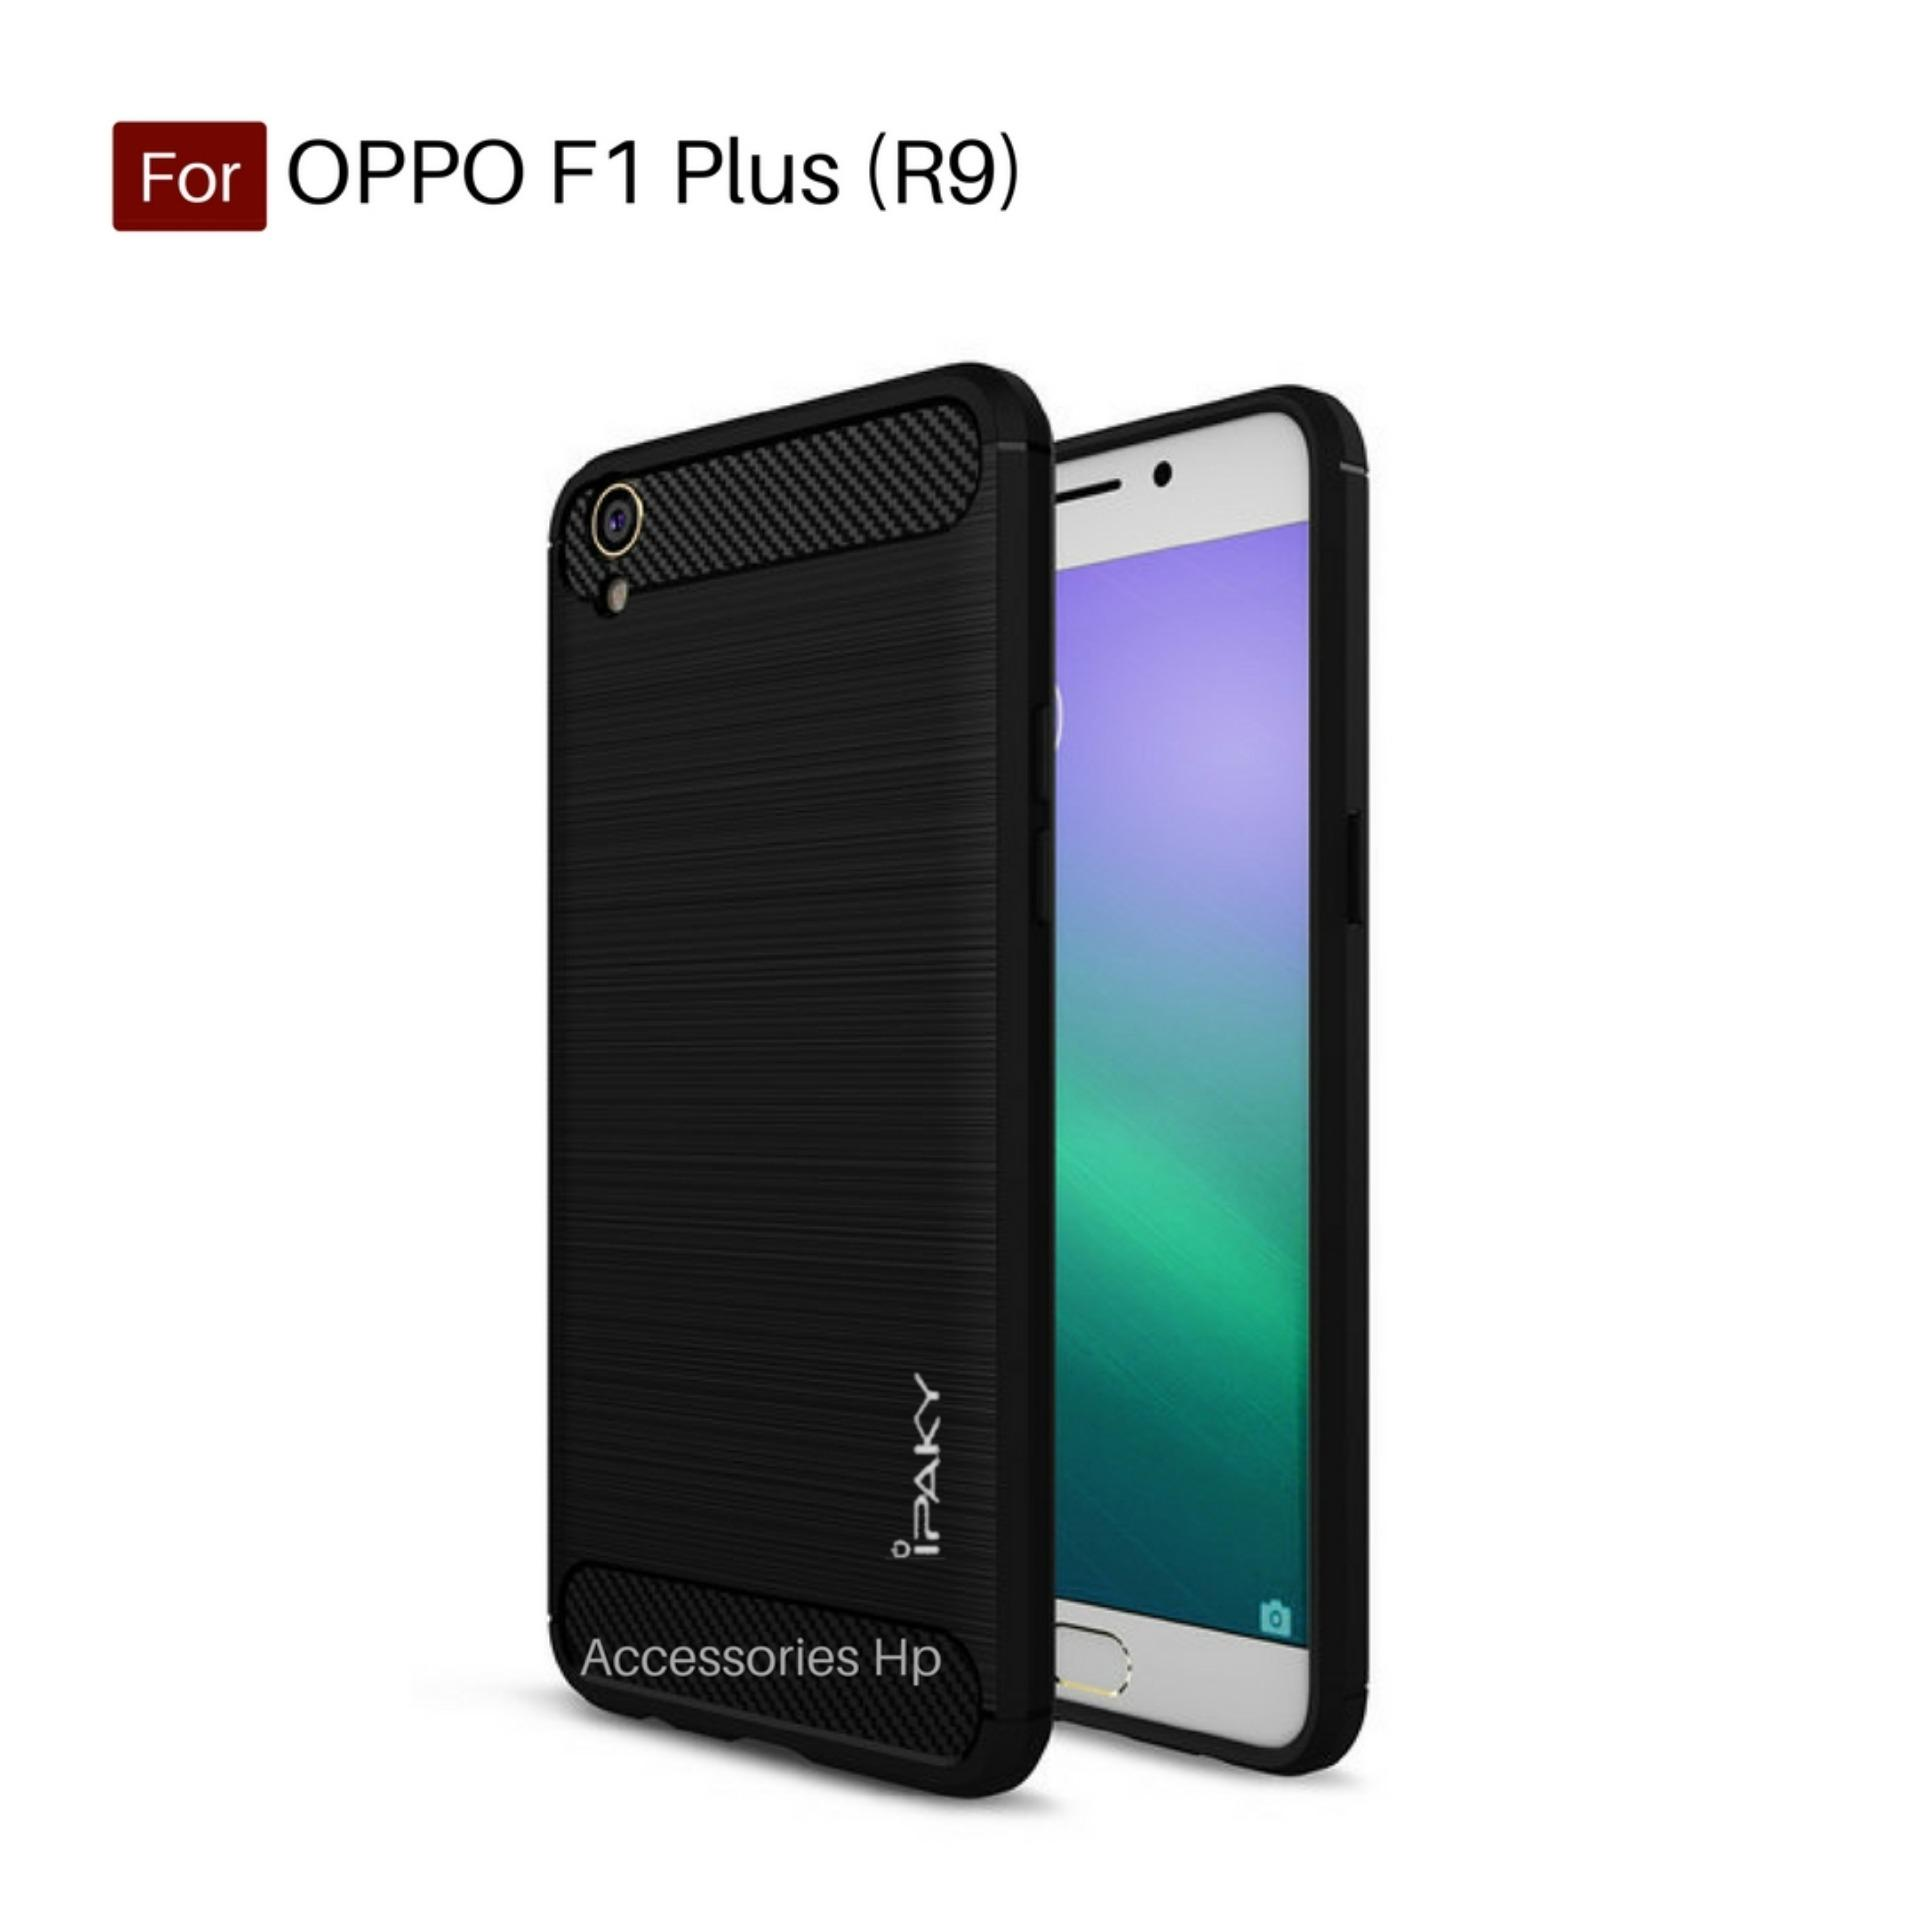 Accessories HP Premium Quality Carbon Shockproof Hybrid Case For OPPO F1 Plus (R9) -